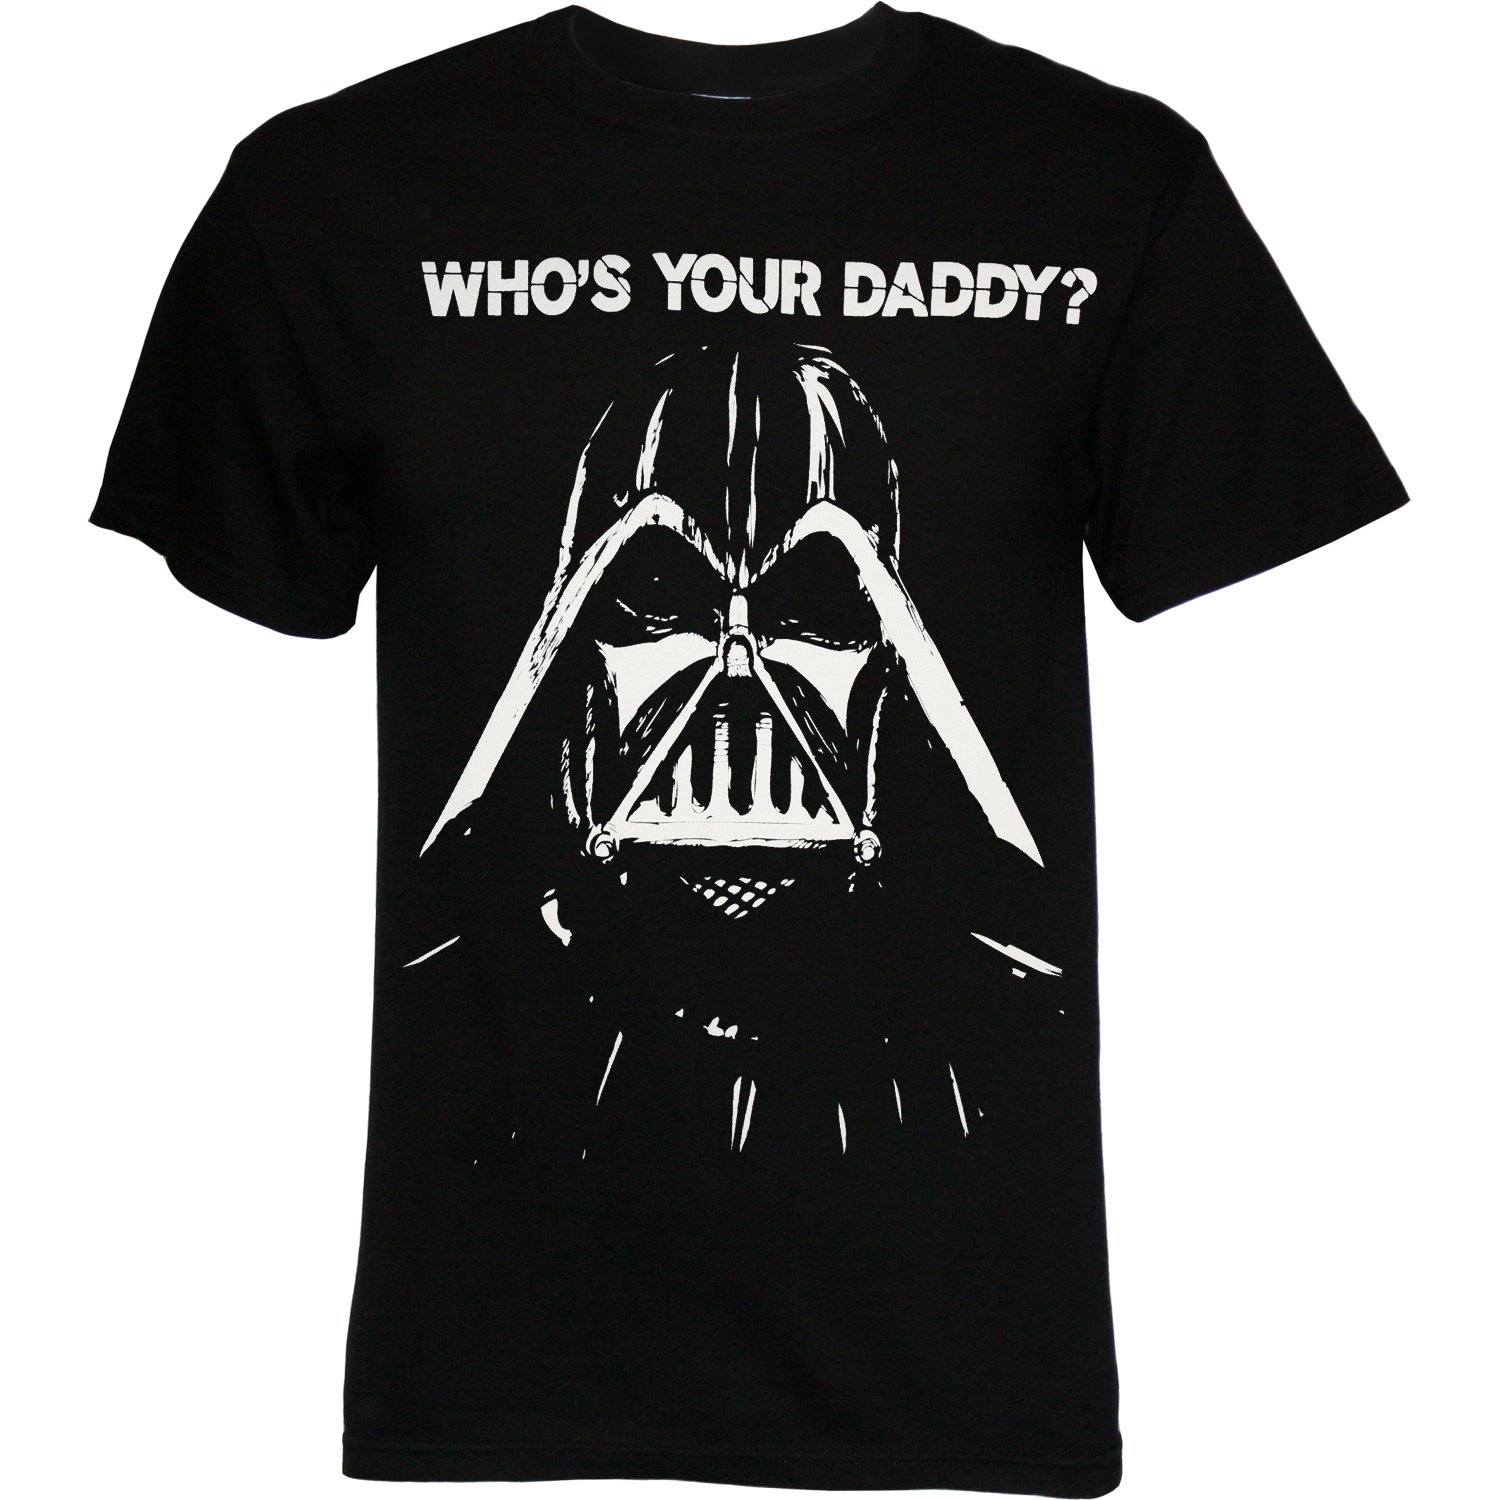 sale darth vader xl who 39 s your daddy black white star wars funny tshirt shirt ebay. Black Bedroom Furniture Sets. Home Design Ideas